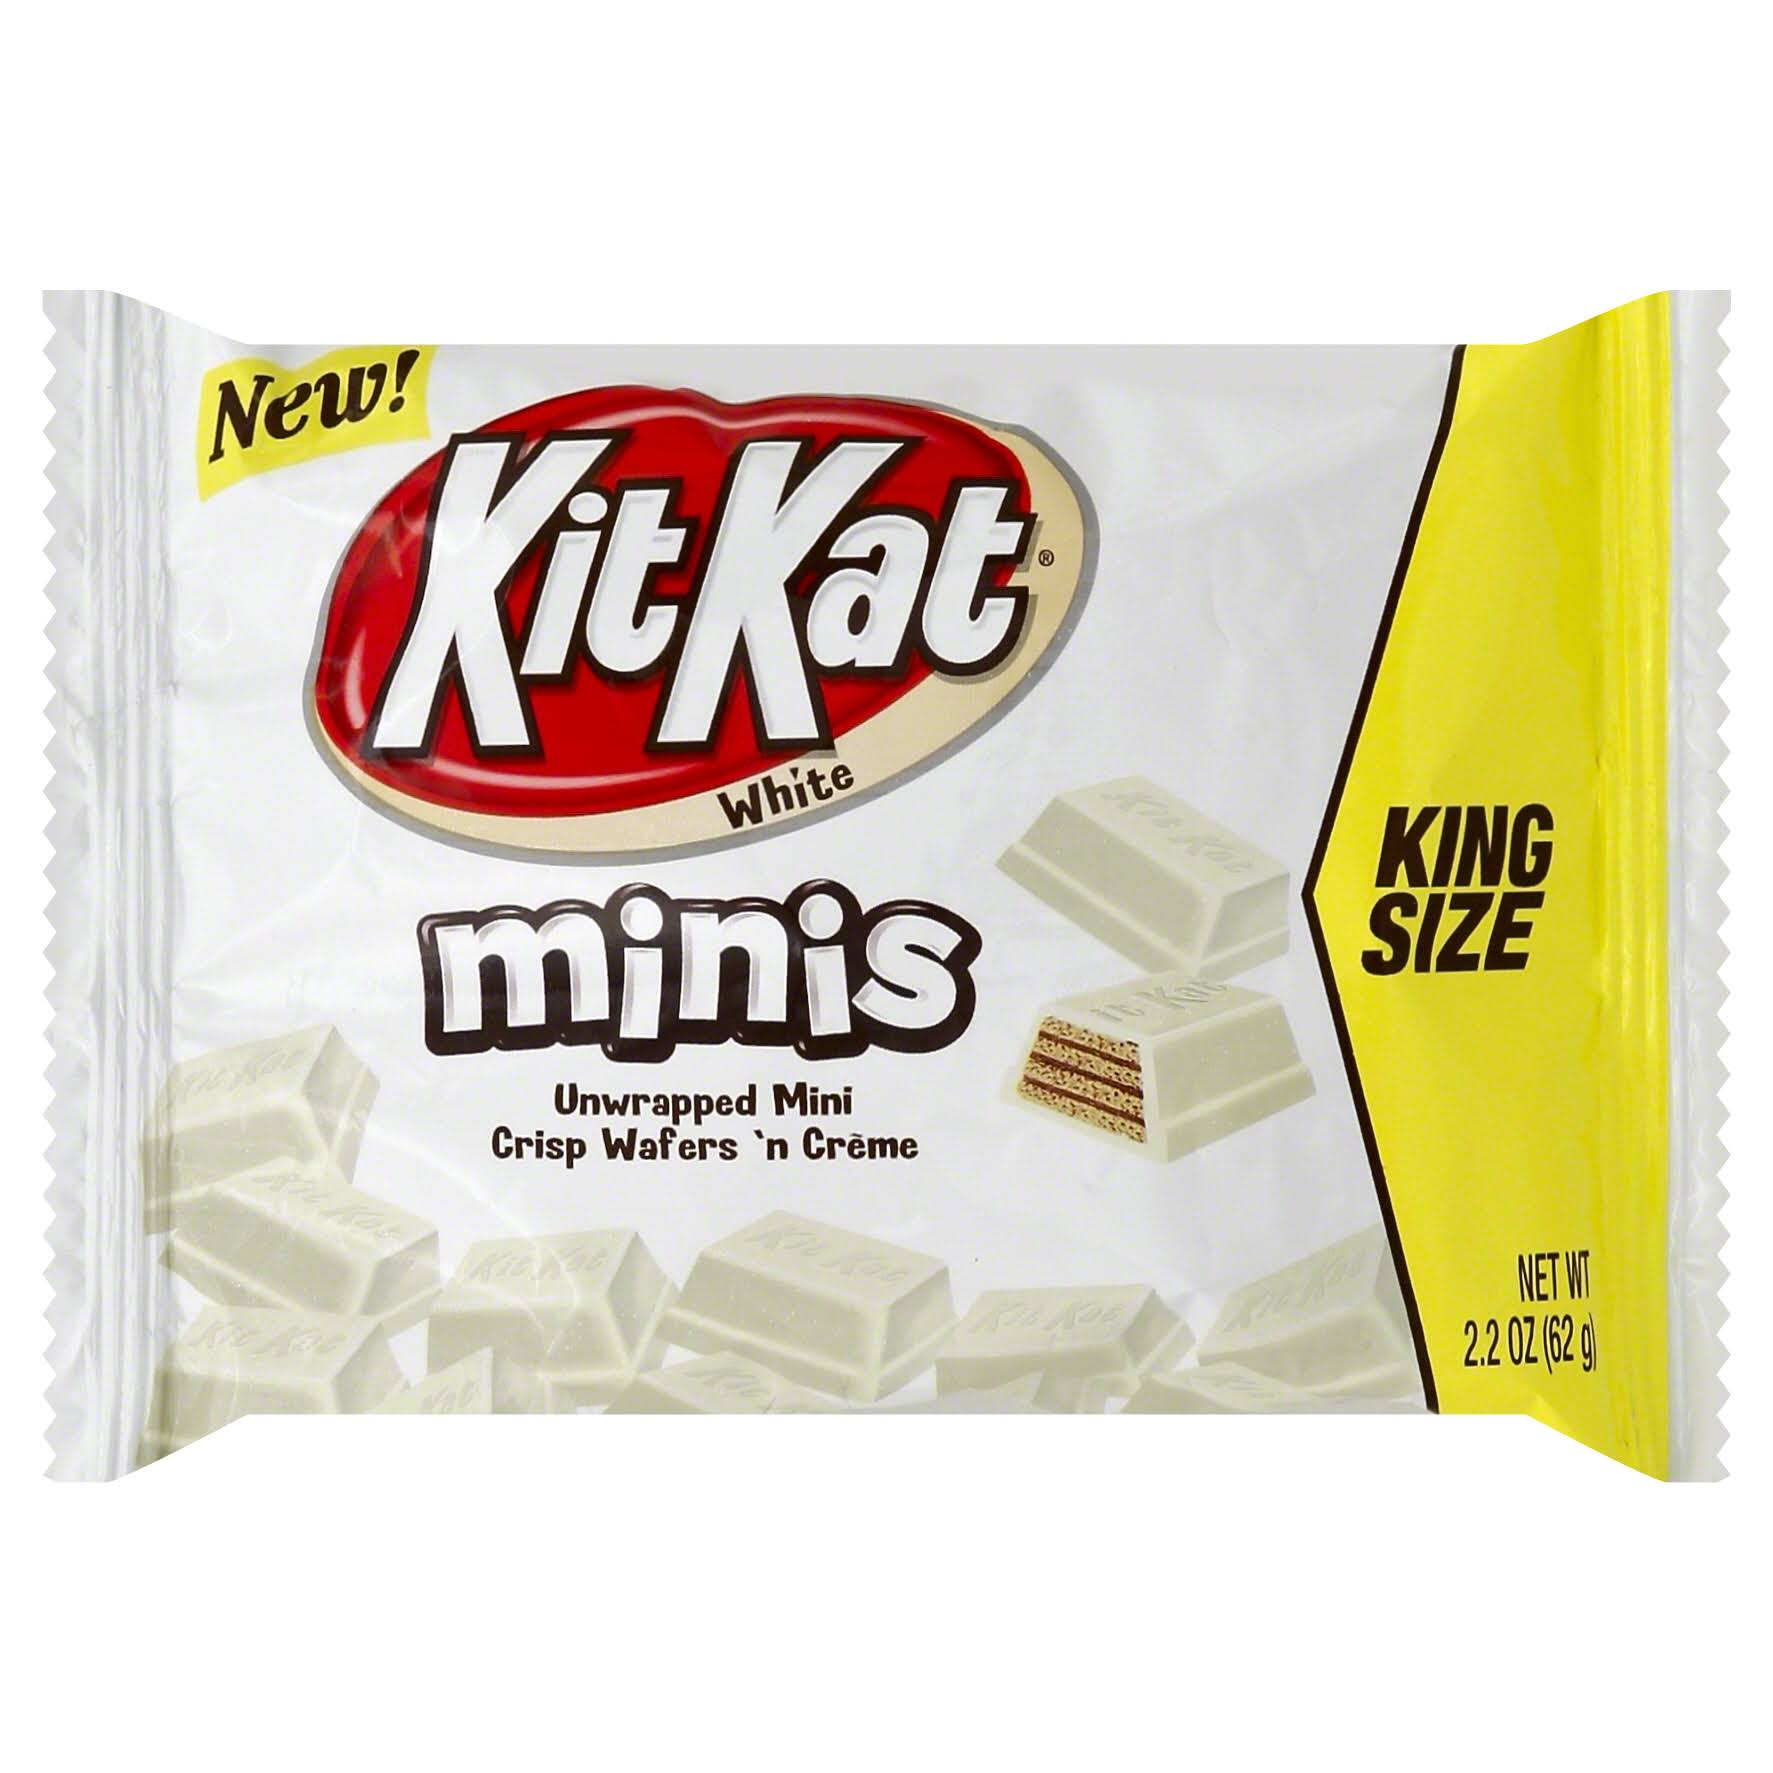 Kit Kat Minis Crisp Wafers 'N Cream - 226g, White